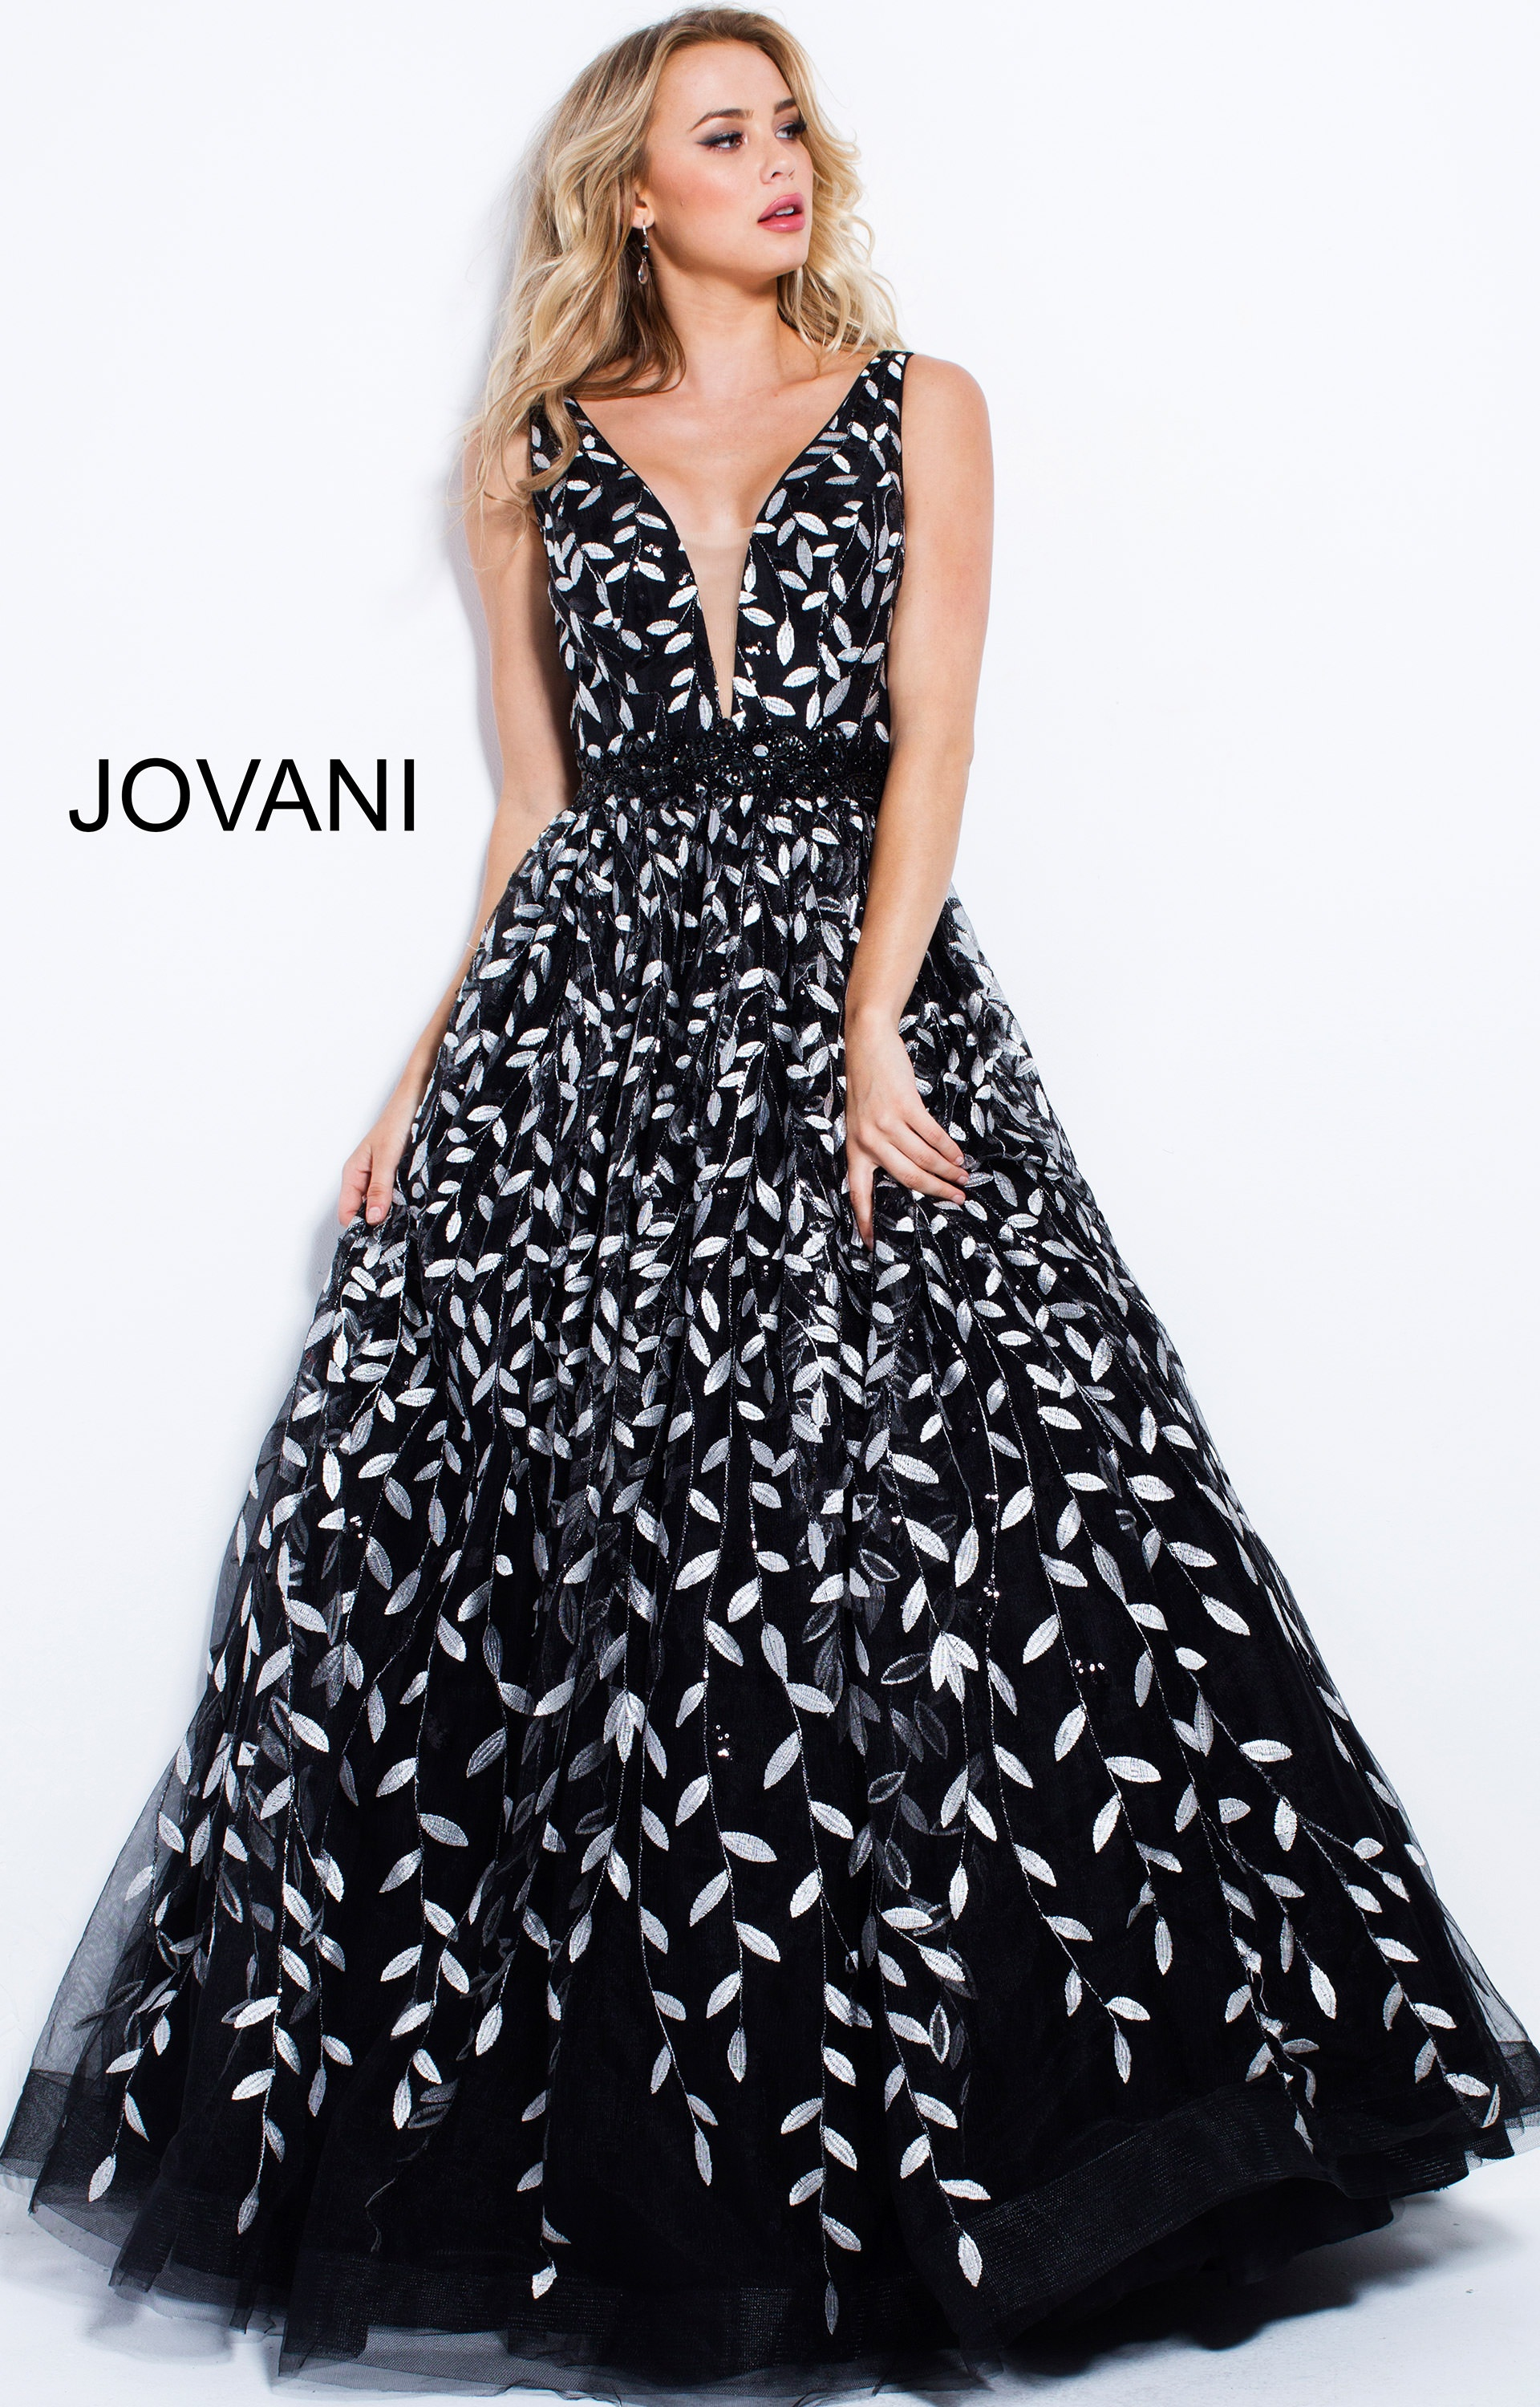 Jovani 55704 - Open Back Tulle Ball Gown Prom Dress